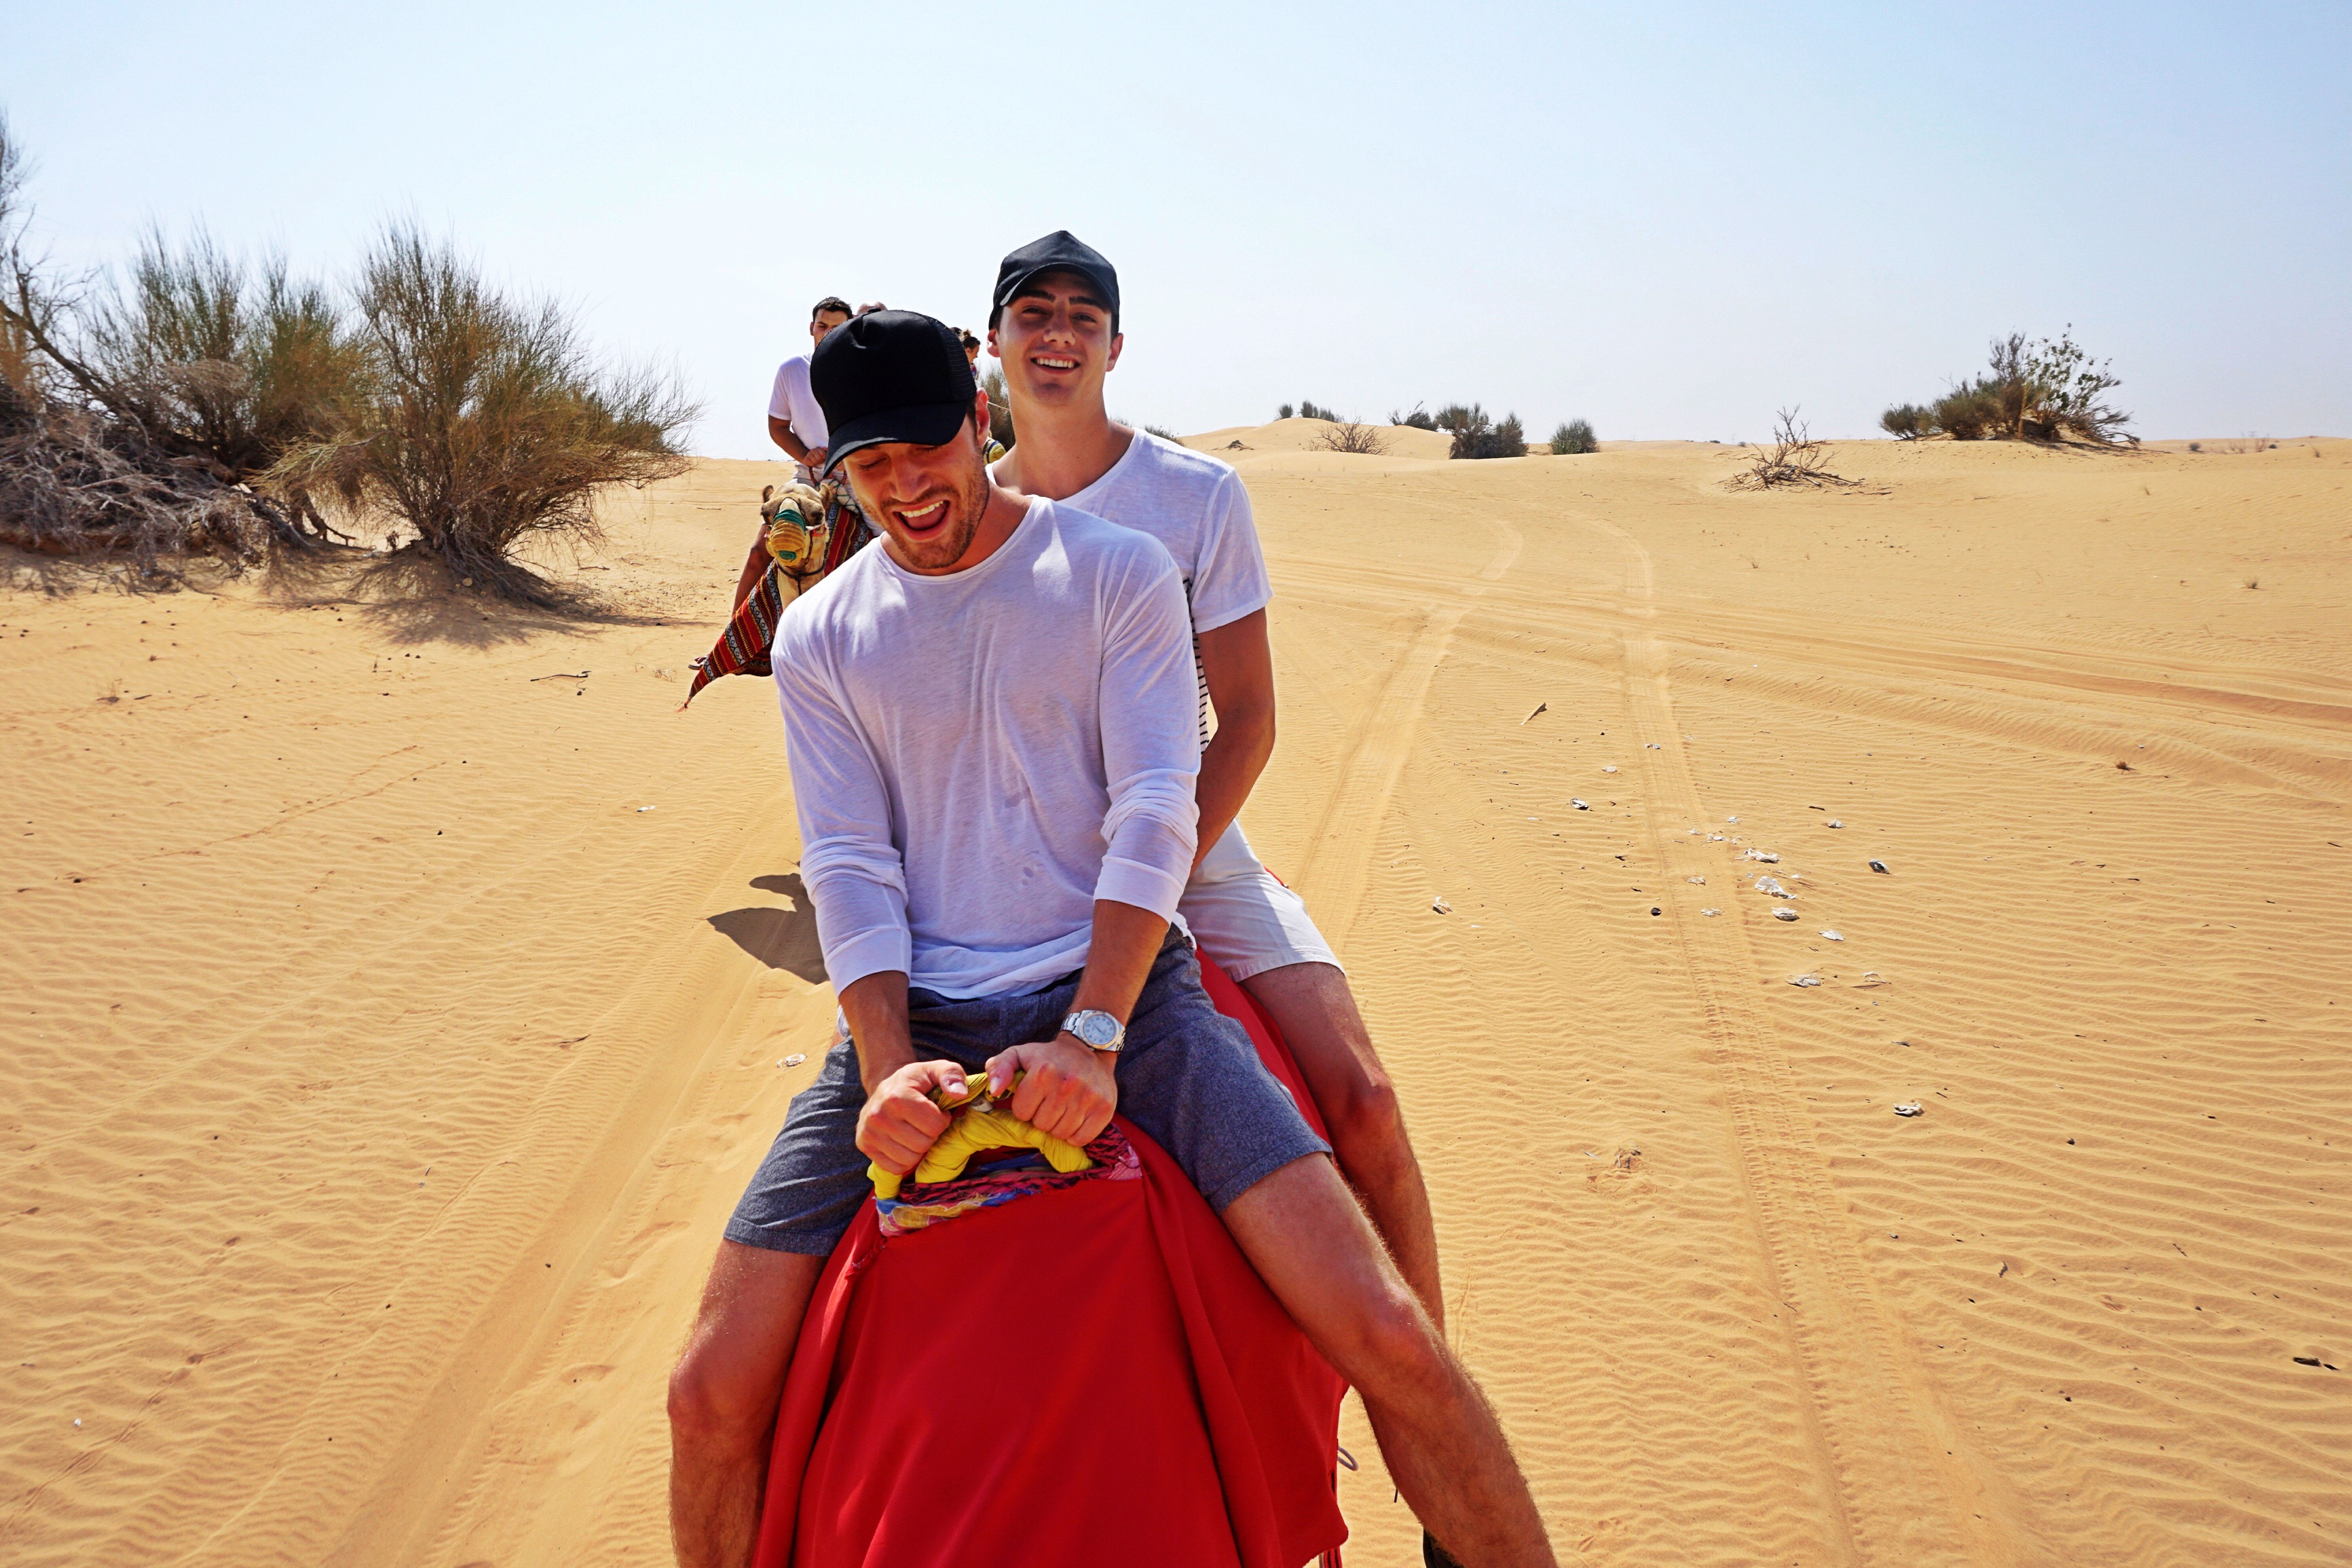 boys-on-camel